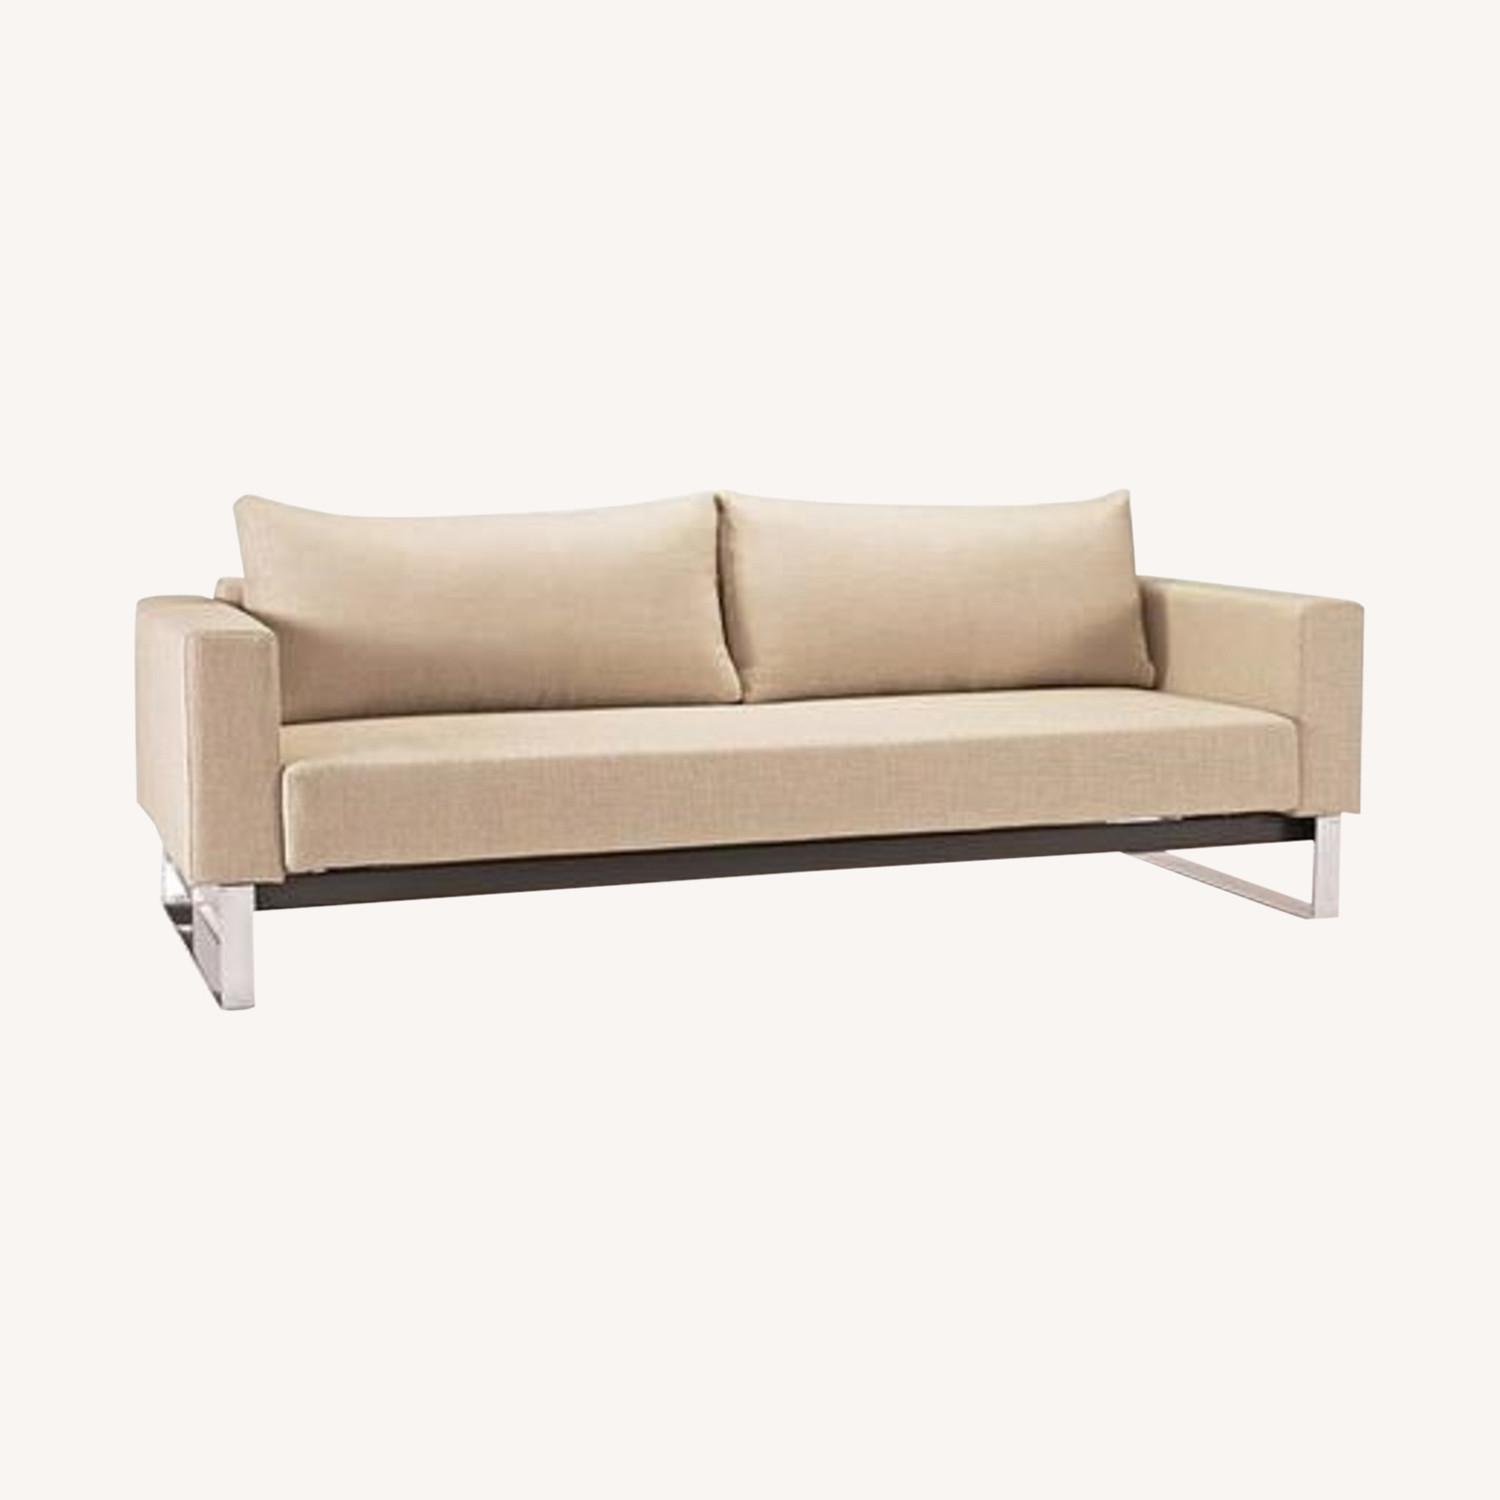 Innovation Cassius Sleek Convertible Sofa (Khaki) - image-0